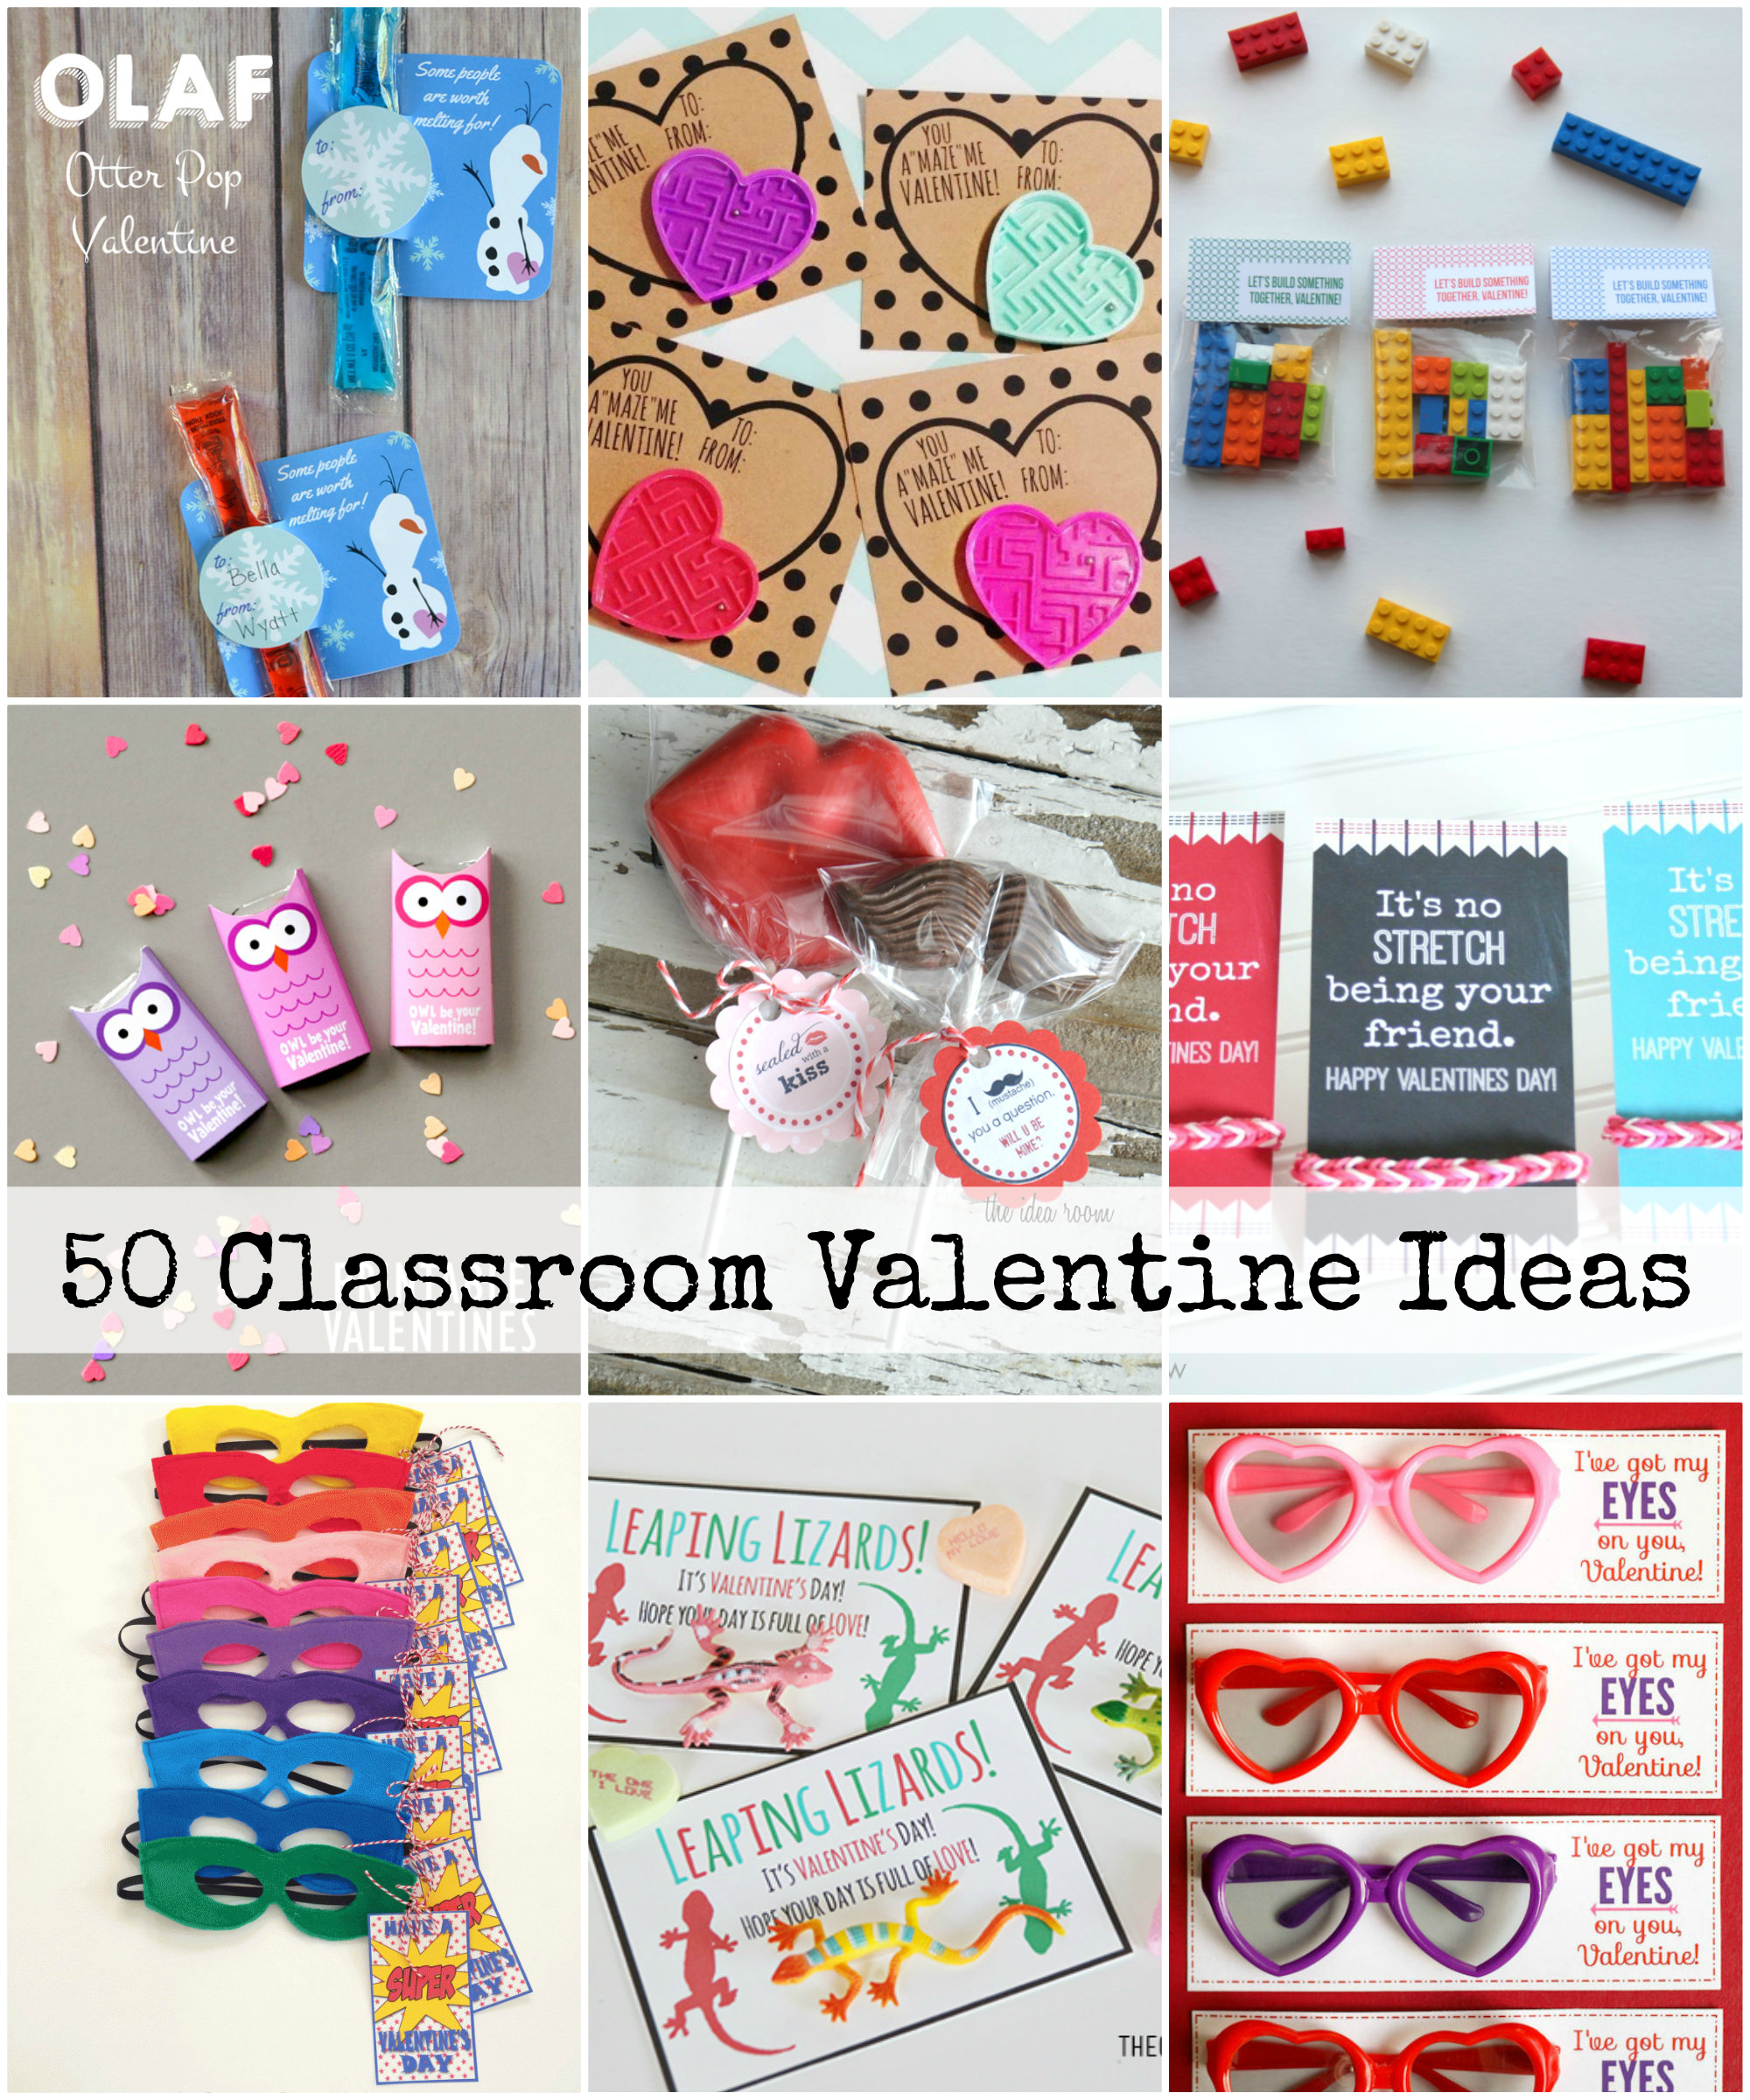 50-Classroom-Valentine-Ideas-Cover (2)